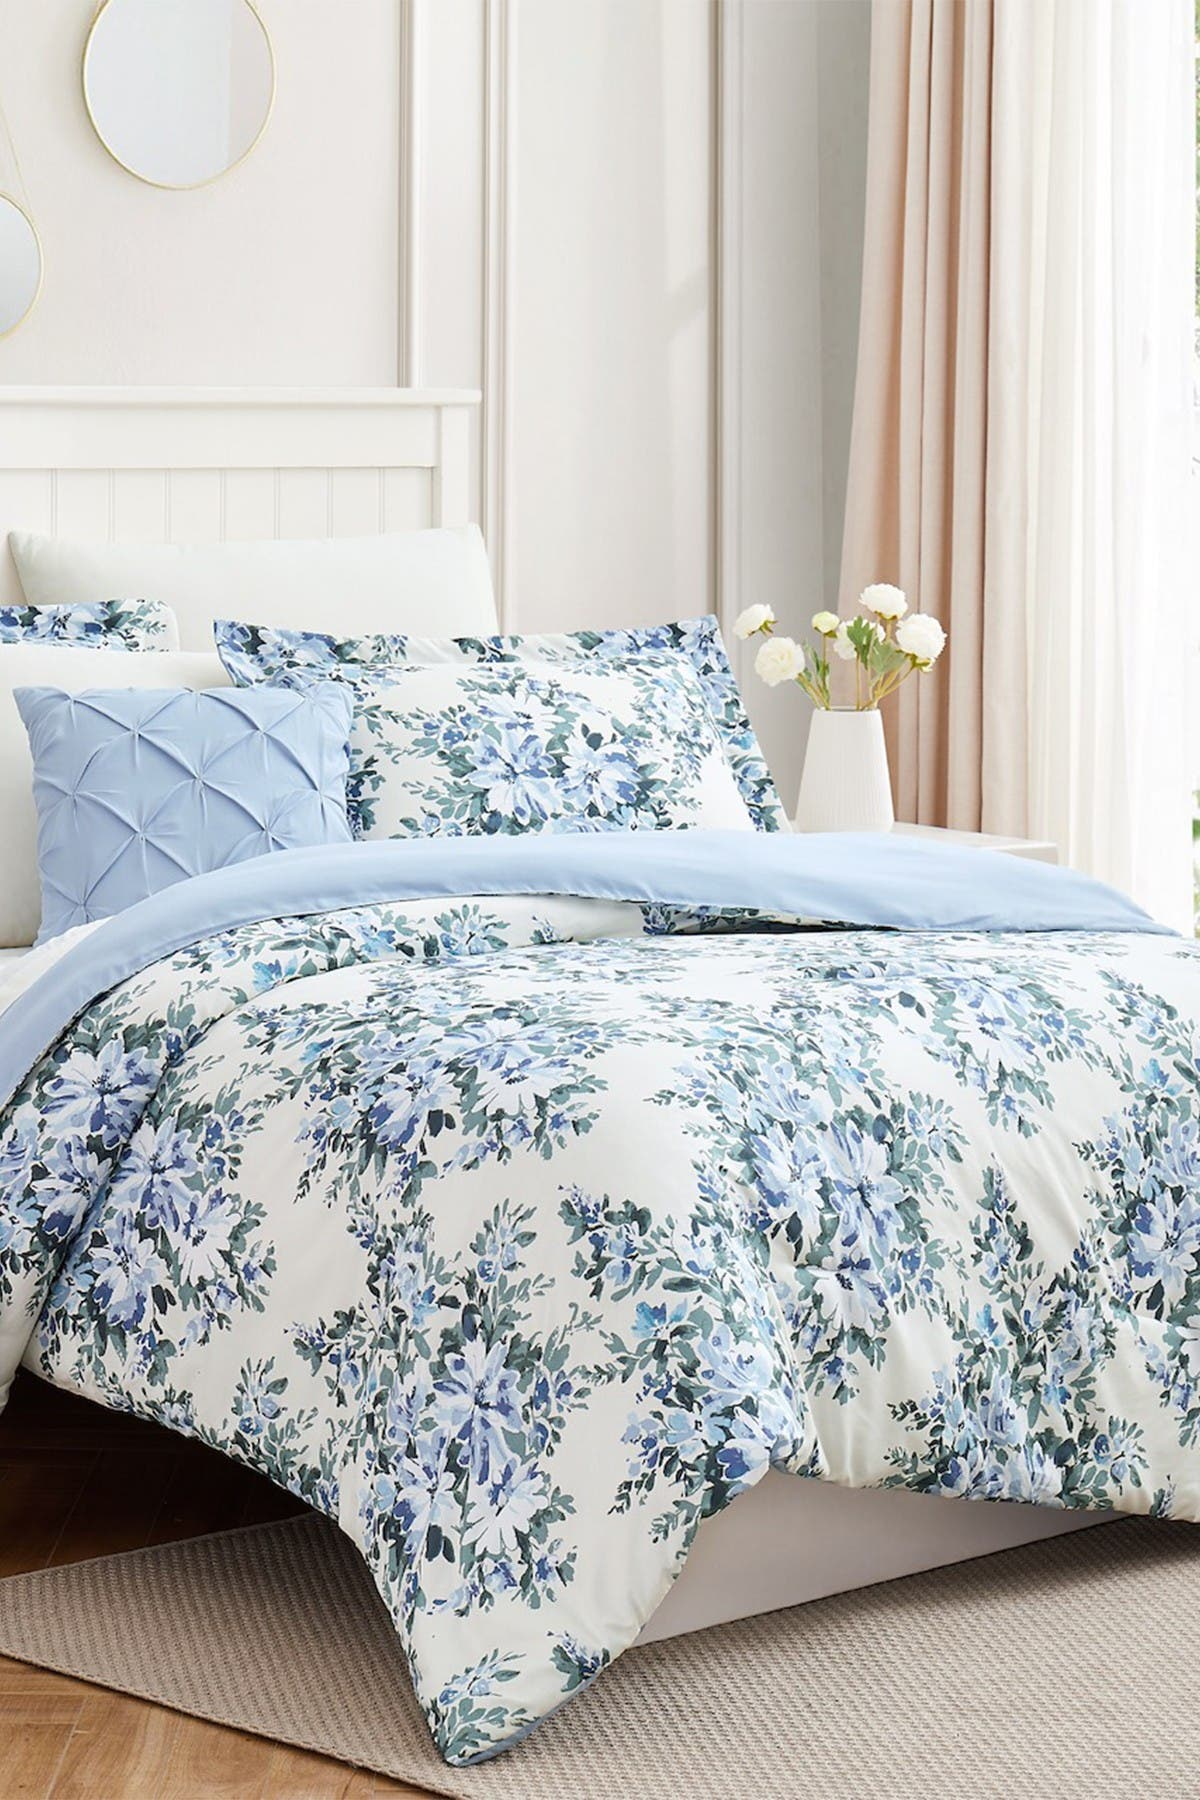 Image of Modern Threads Complete 8-Piece Bedding Set - Leela - Full